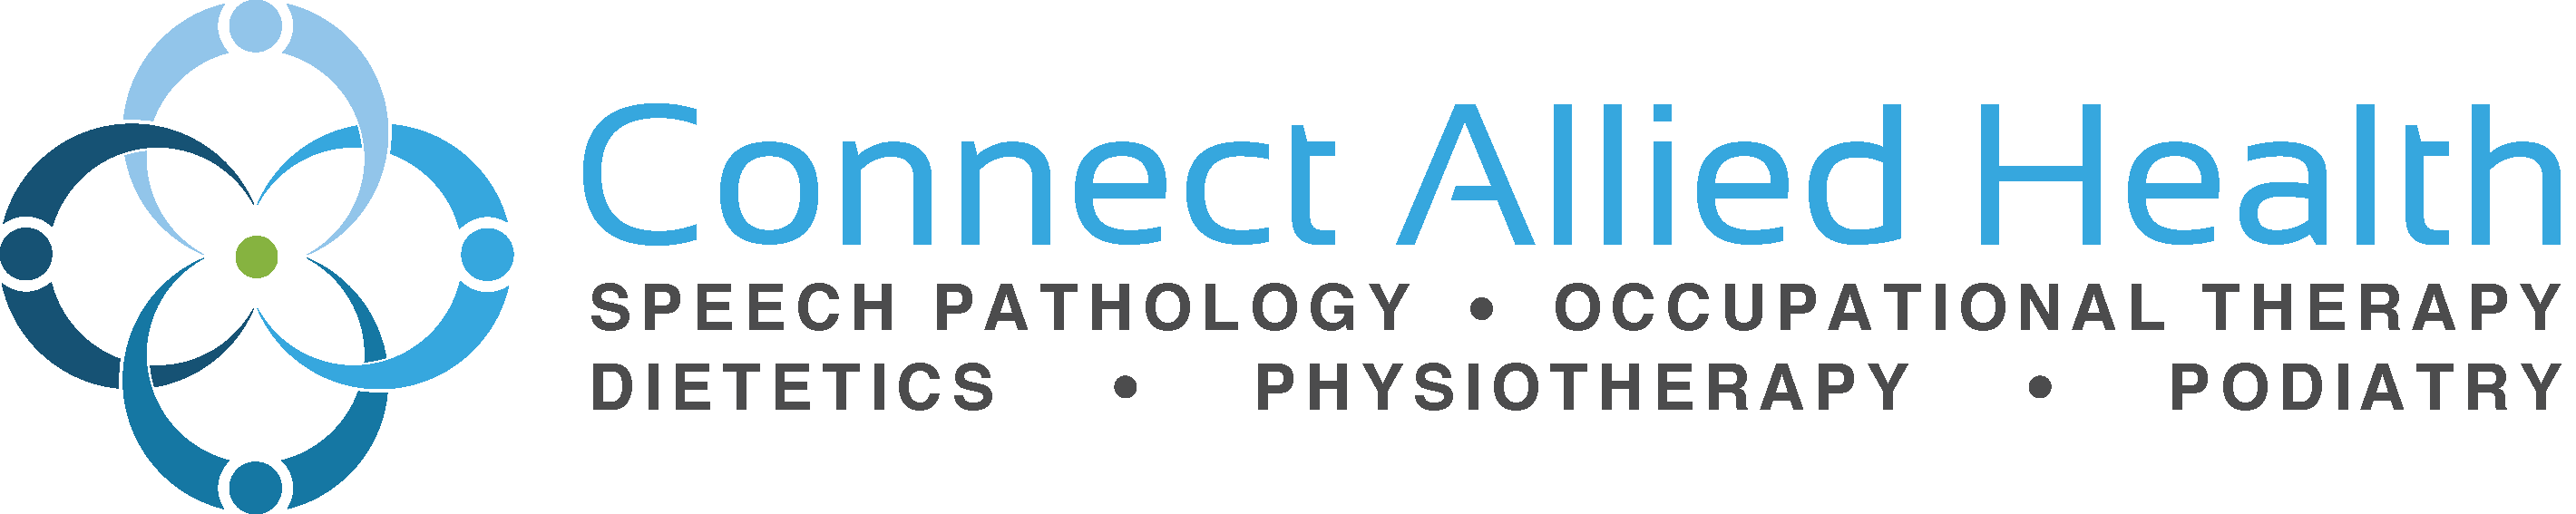 Connect Allied Health Logo